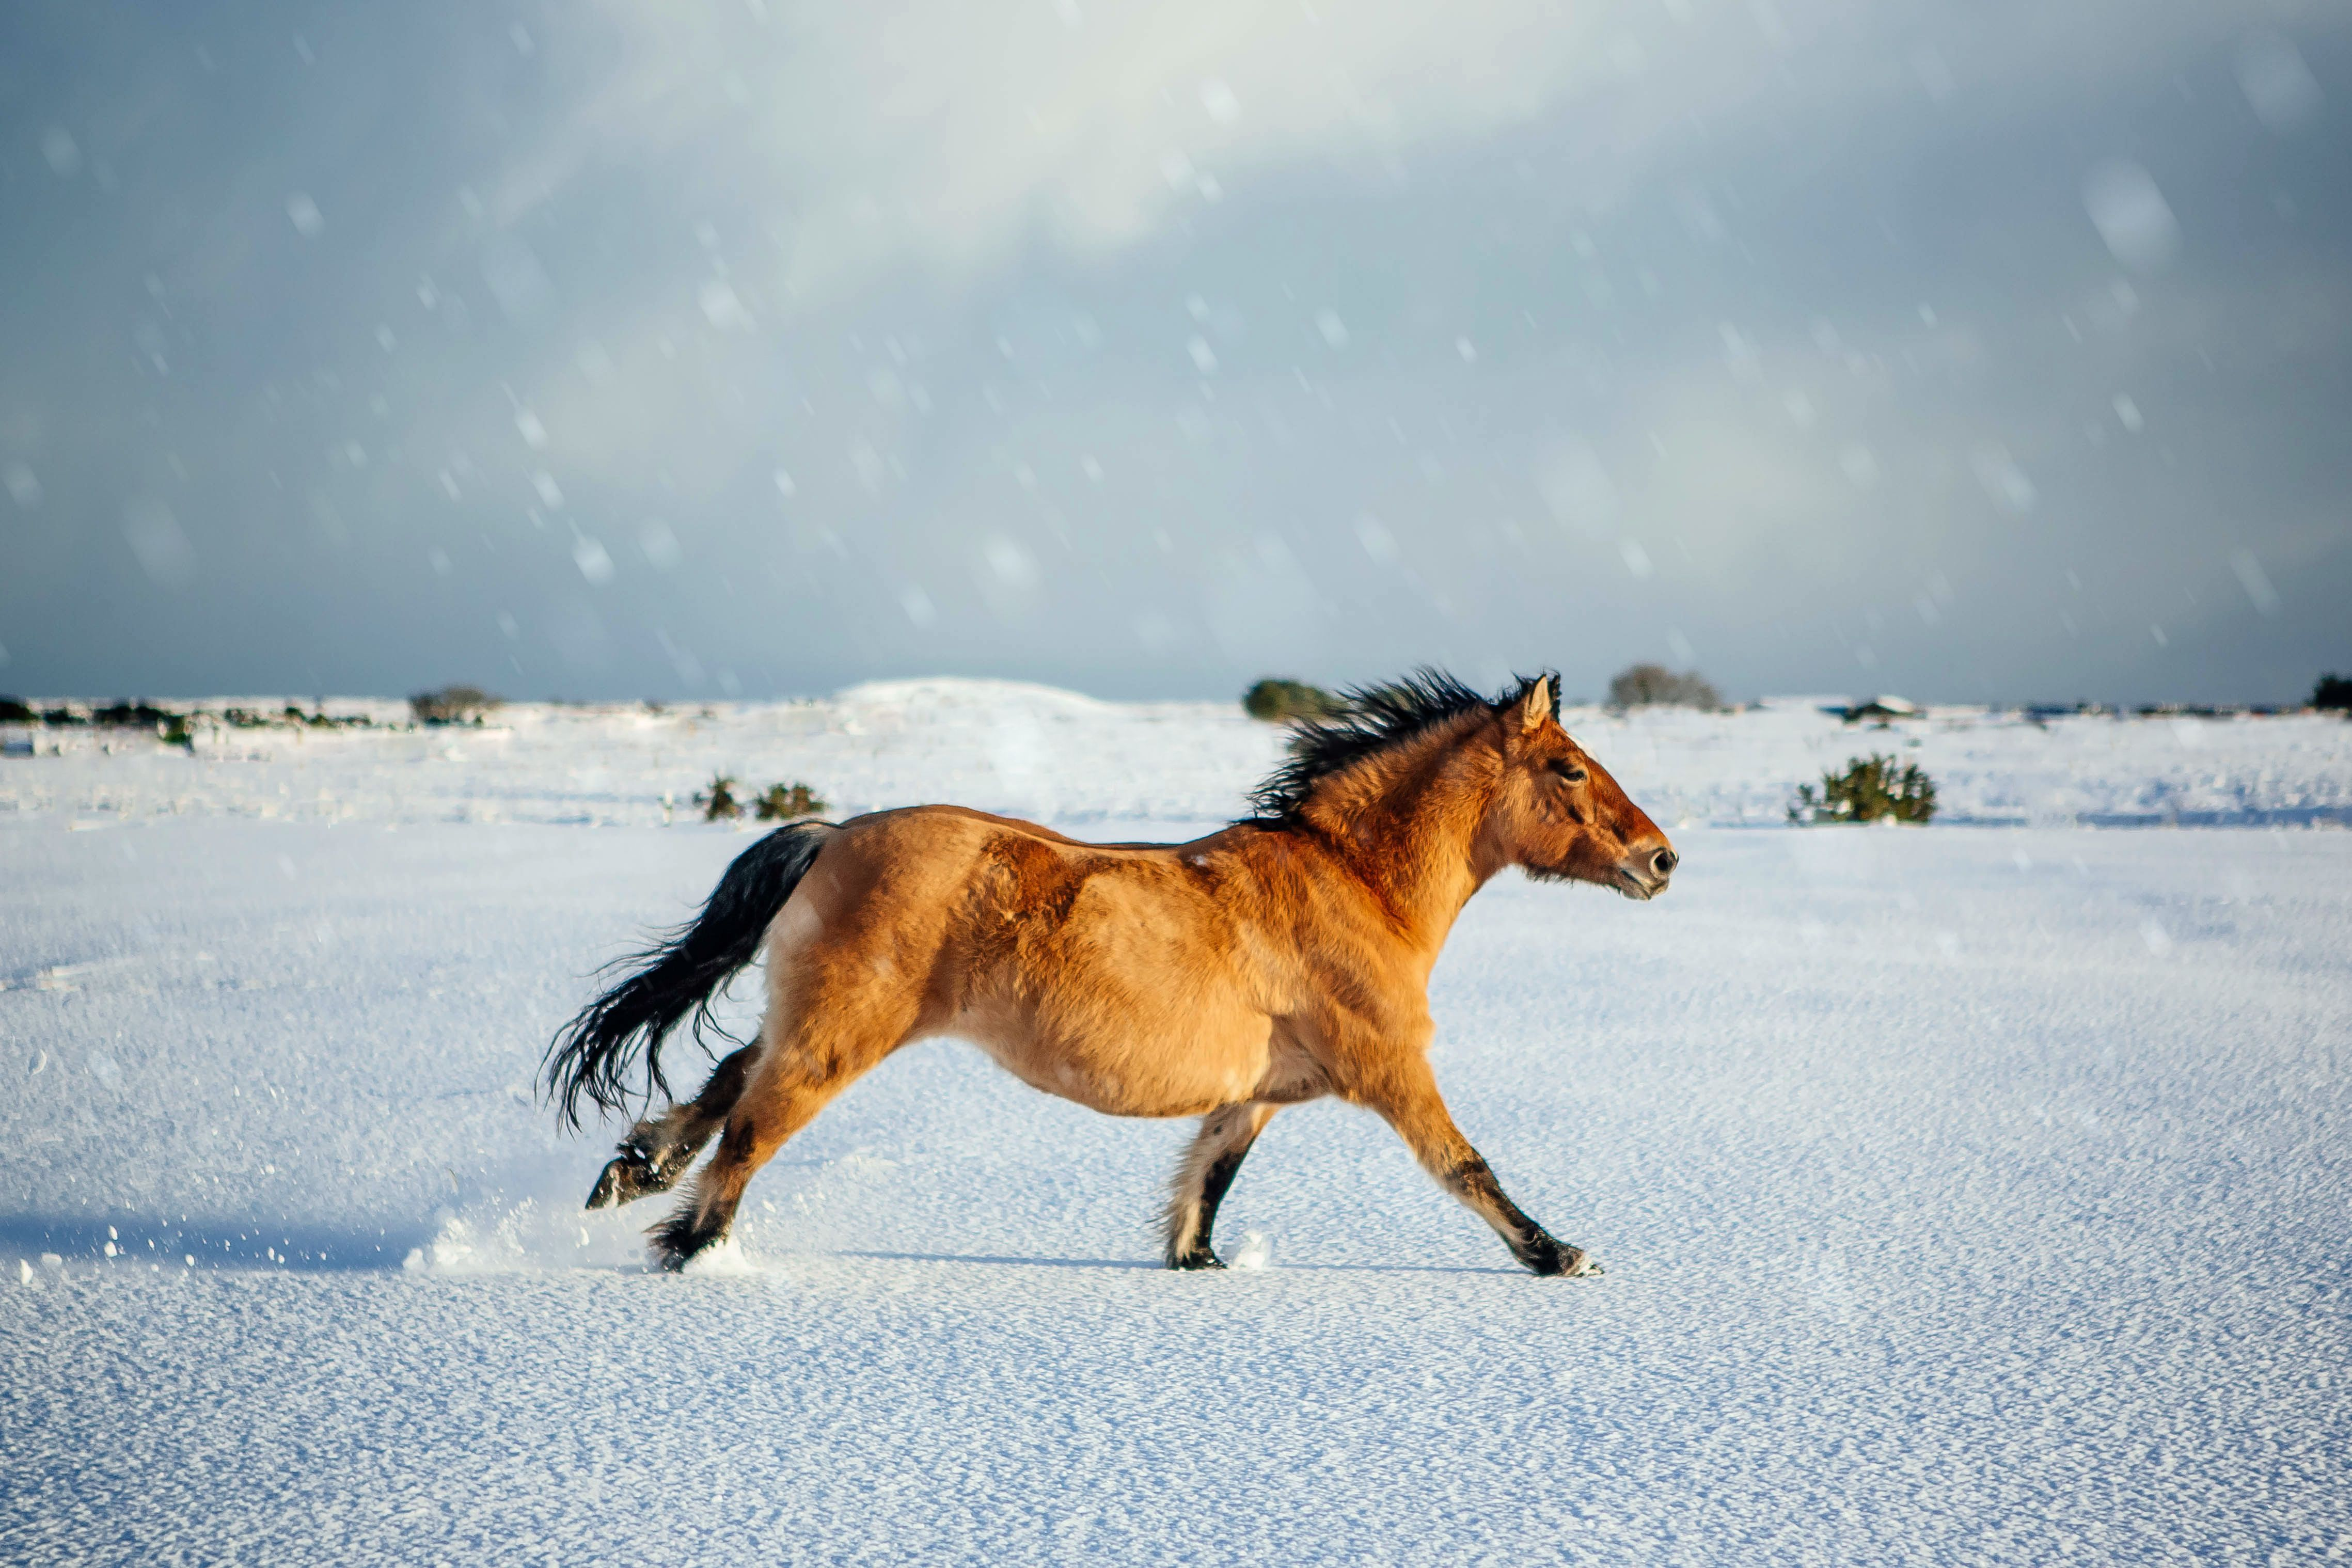 A highland pony gallops across snowy fields in the rural highlands of Scotland. Highland ponies are native to Scotland, their thick coats helping them withstand the harsh winters.